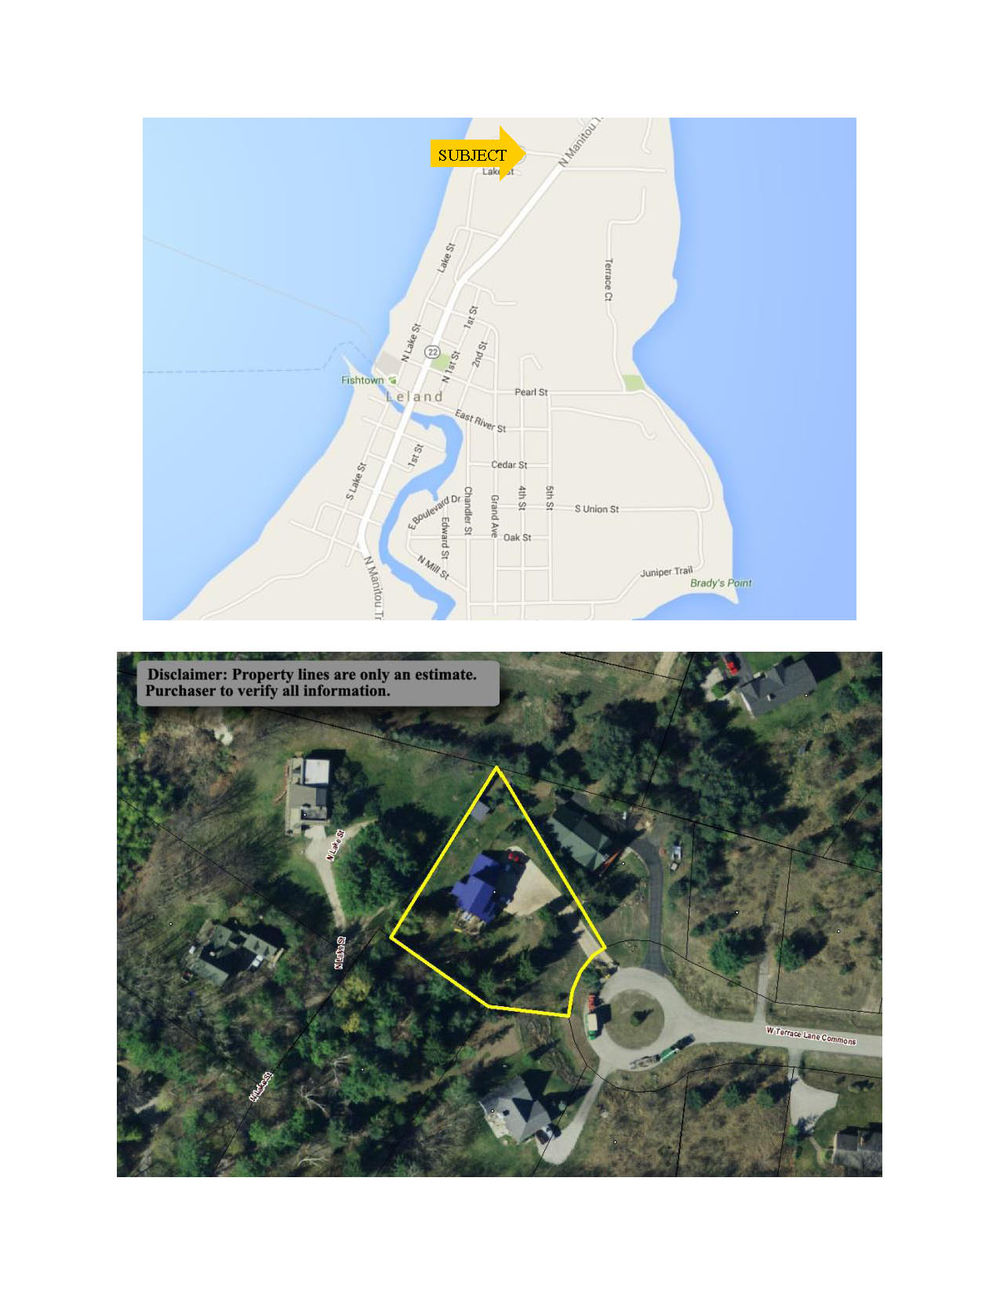 110 W Terrace Lane Commons, Leland, Leelanau County, Real Estate For Sale by Oltersdorf Realty Marketing Packet (7).jpg